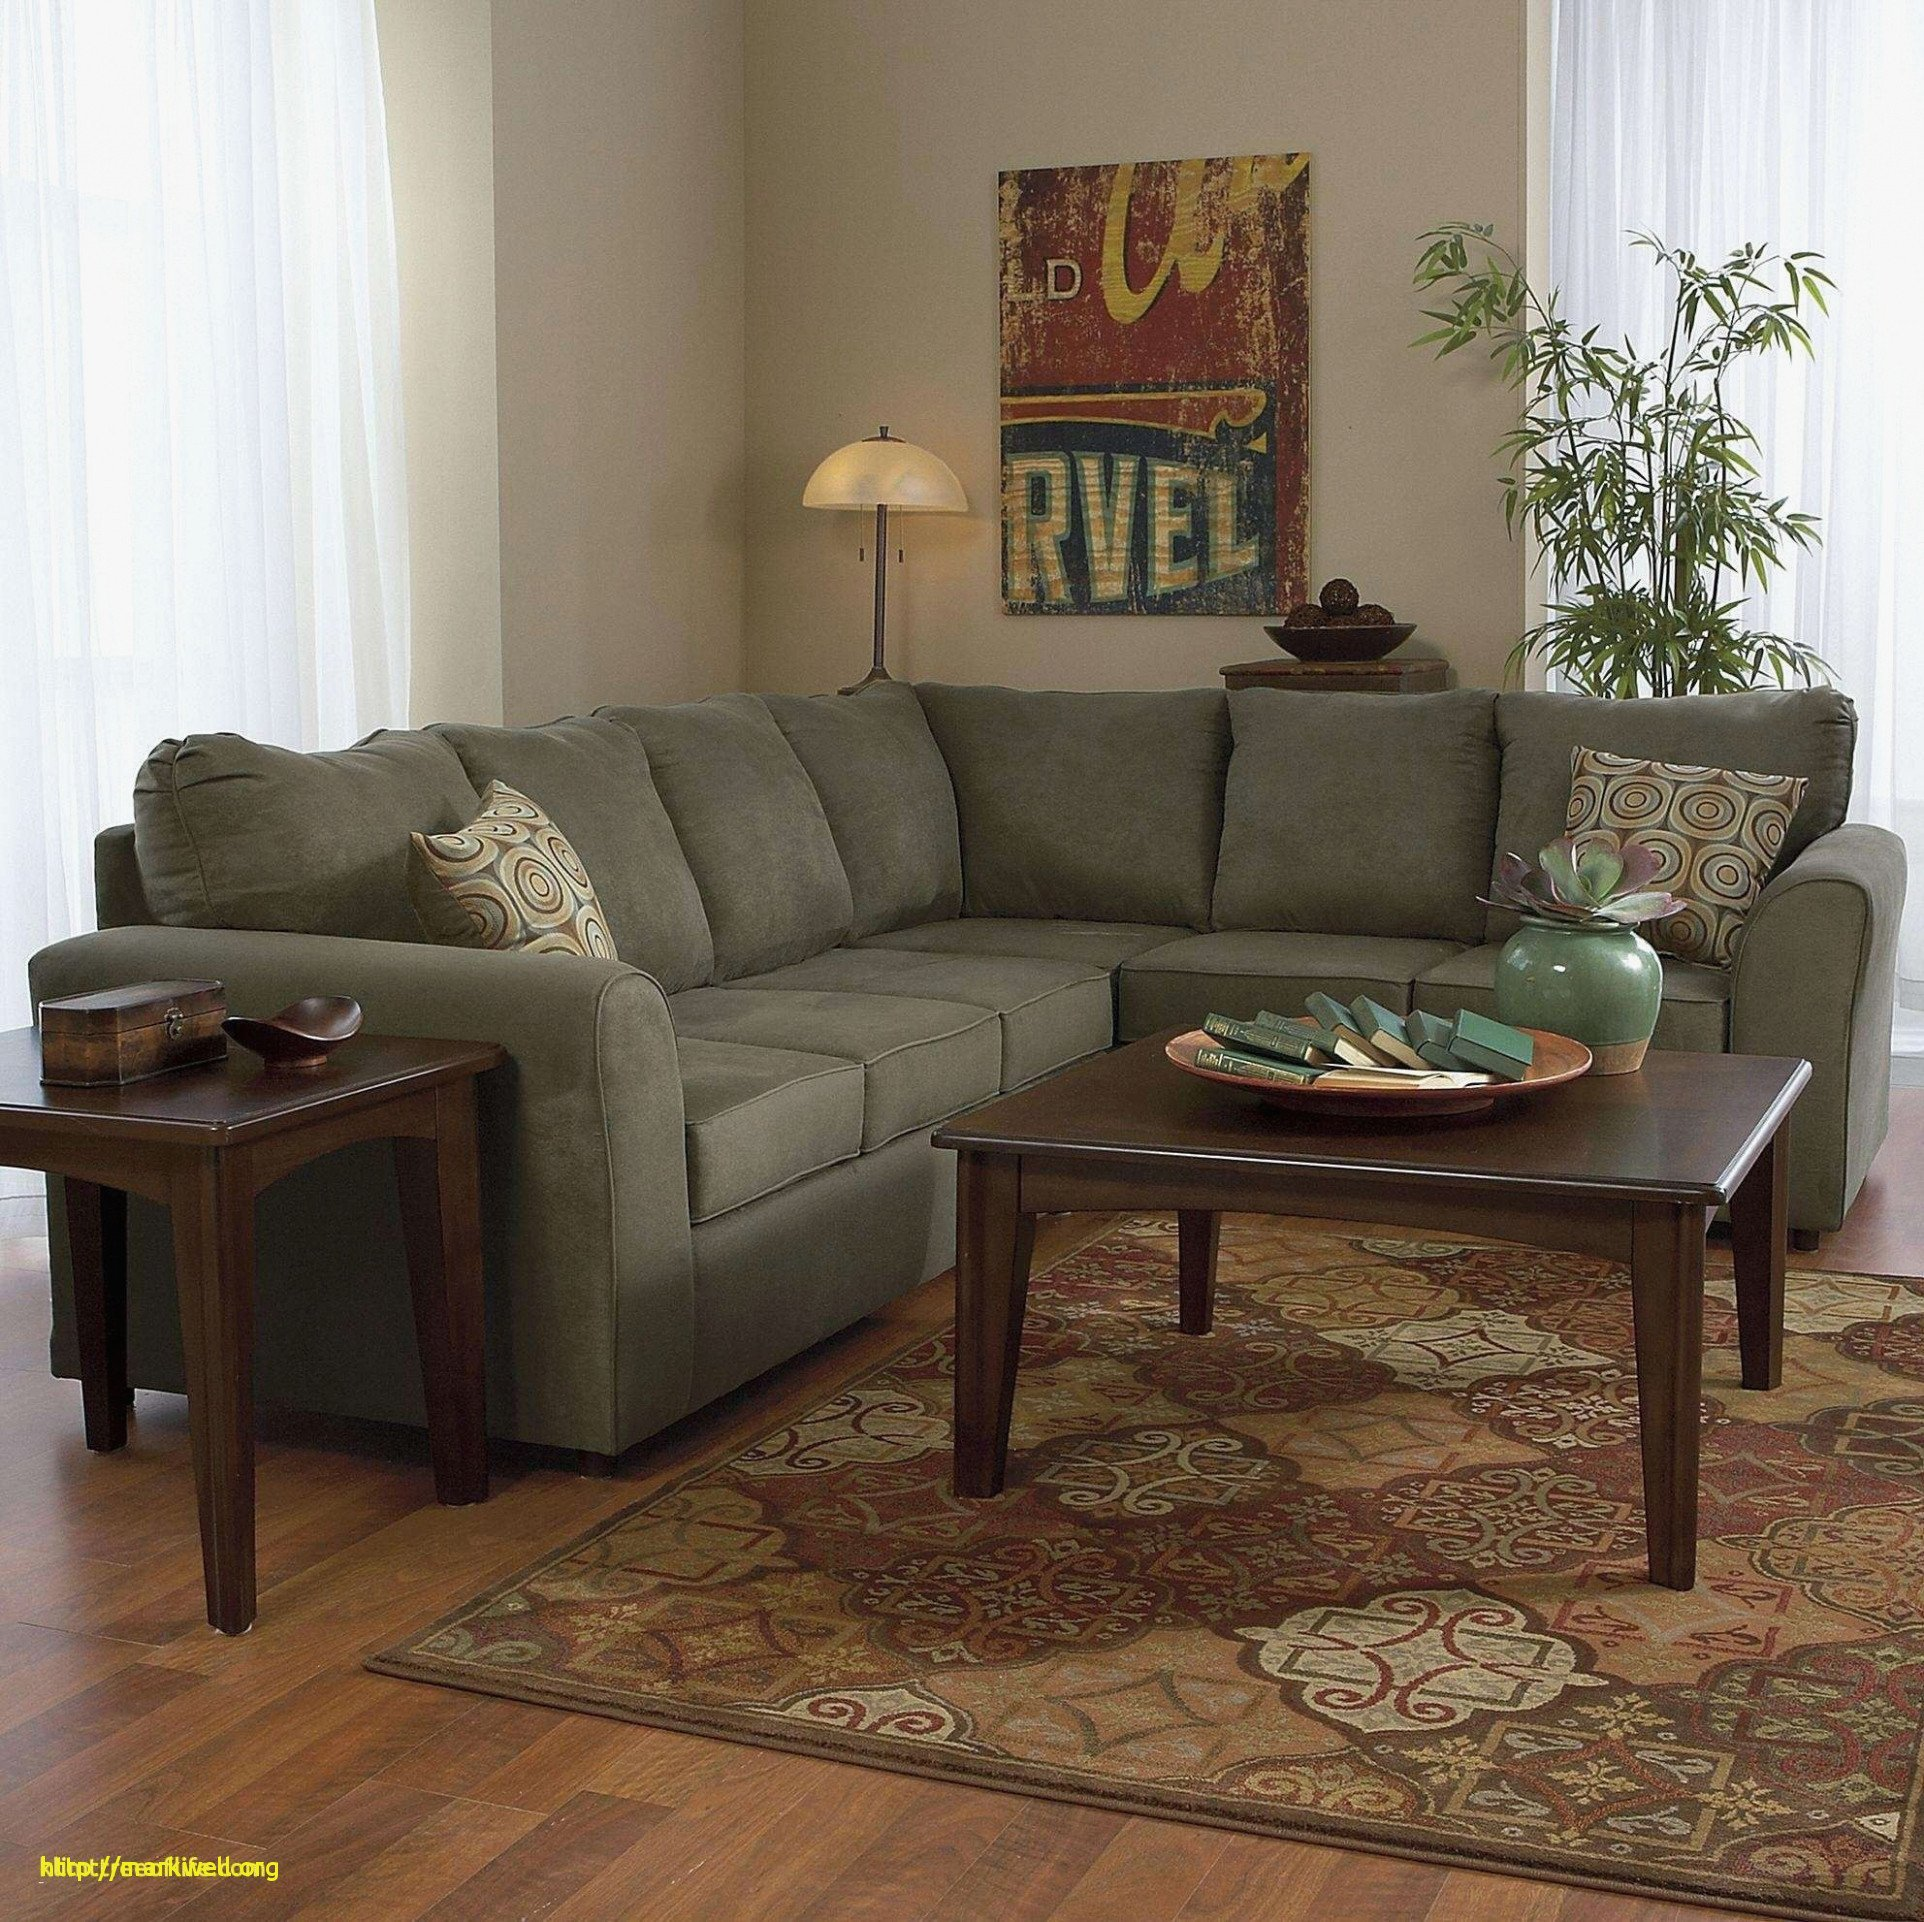 Small Loveseat for Bedroom Beautiful Unique Living Room Accent Furniture